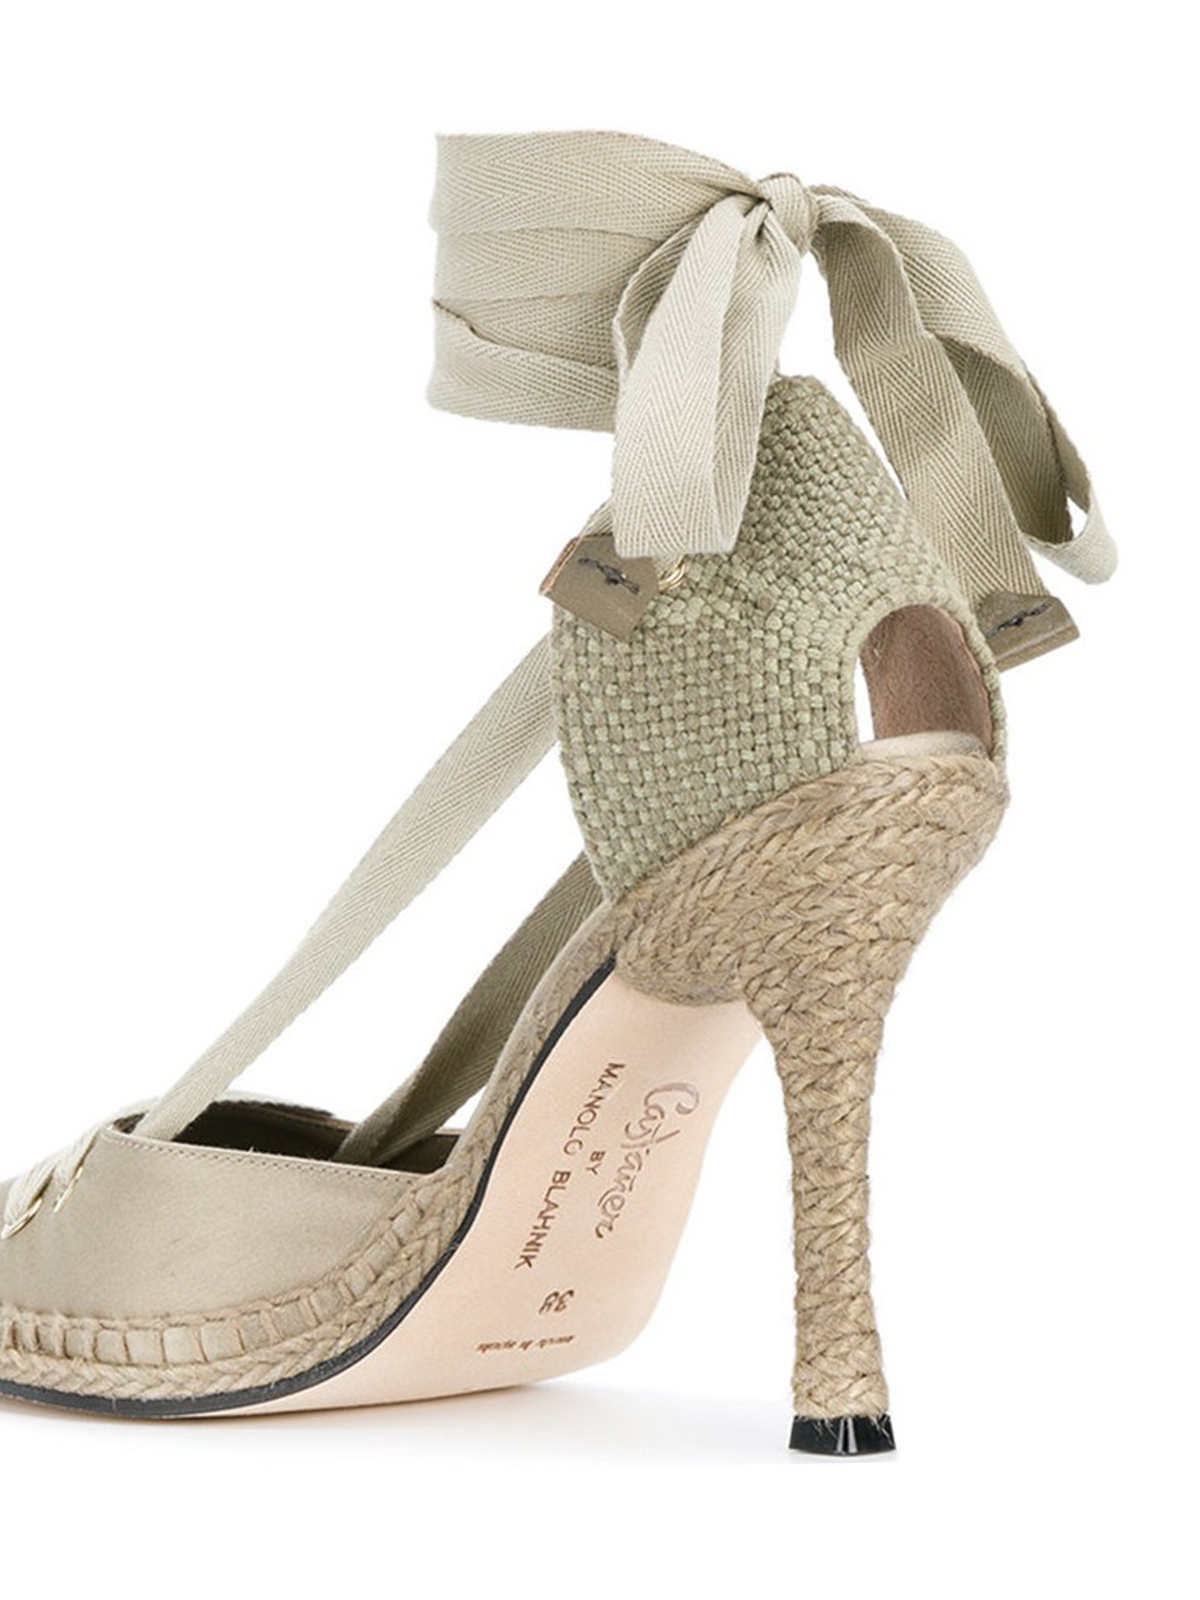 Beige satin pumps by manolo blahnik by castaner court for Scarpe manolo blahnik shop on line